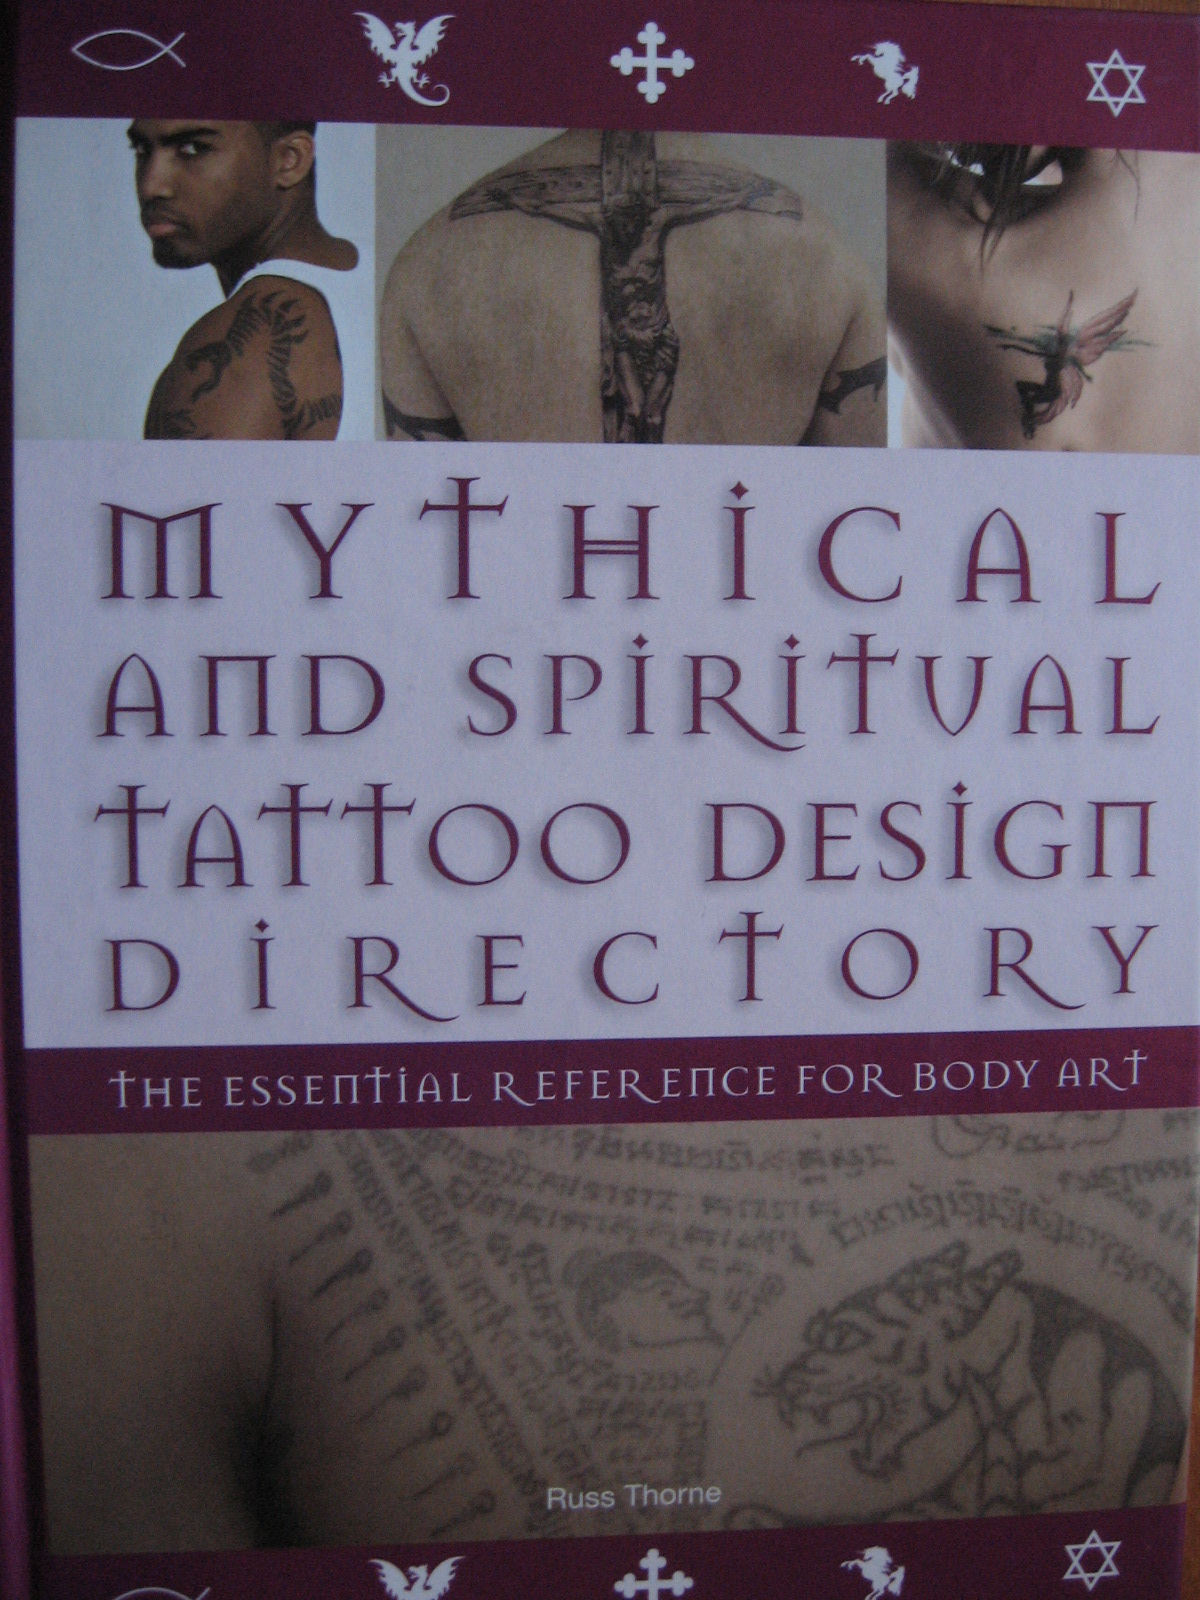 Mythical And Spiritual Tattoo Design Directory The Essential Reference For Body Art